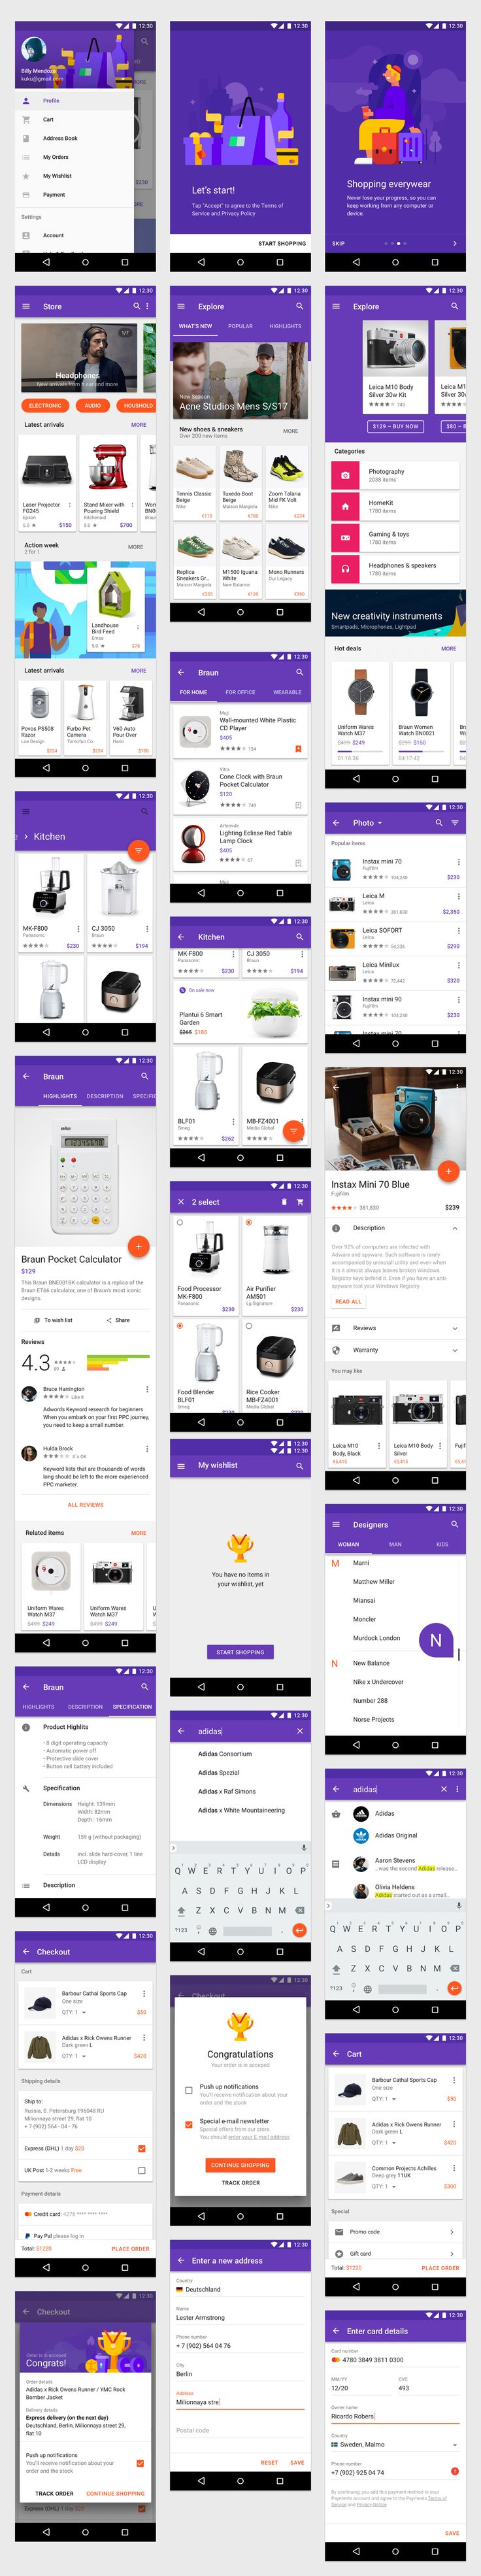 Free set of UI elements from Android Nougat pre-designed in Sketch